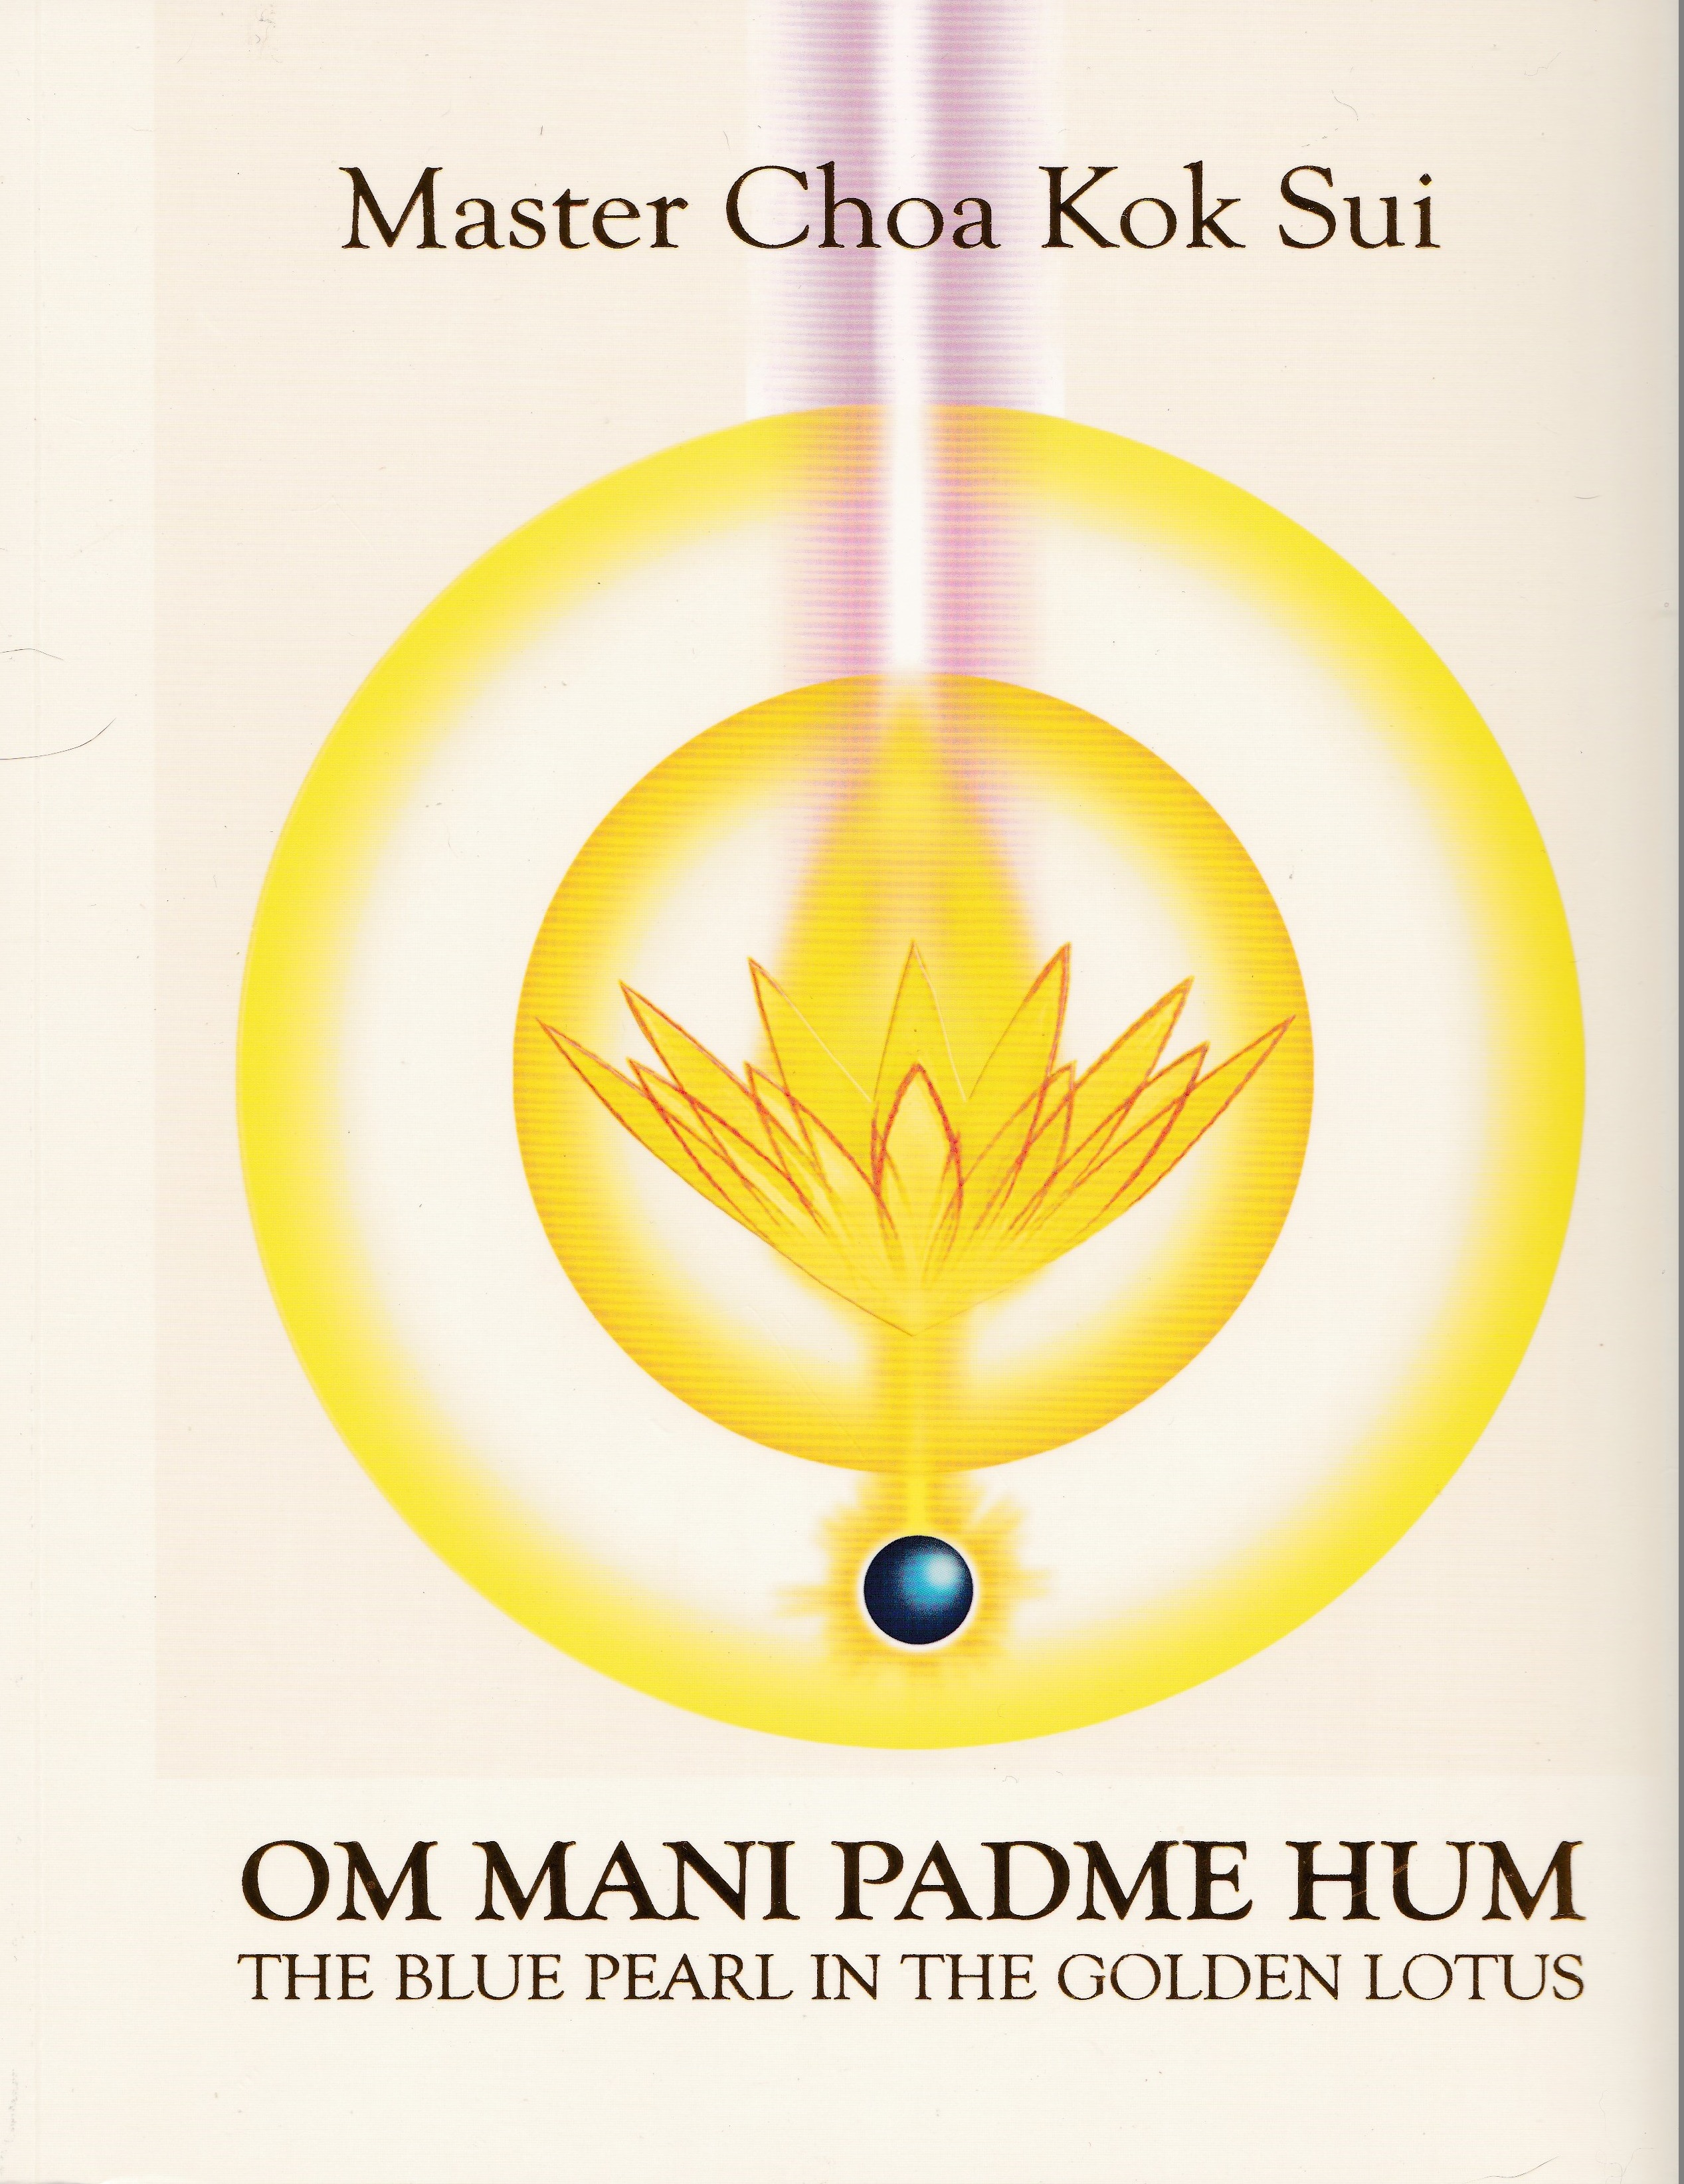 Om mani padme hum. The Blue Pearl in the Golden Lotus